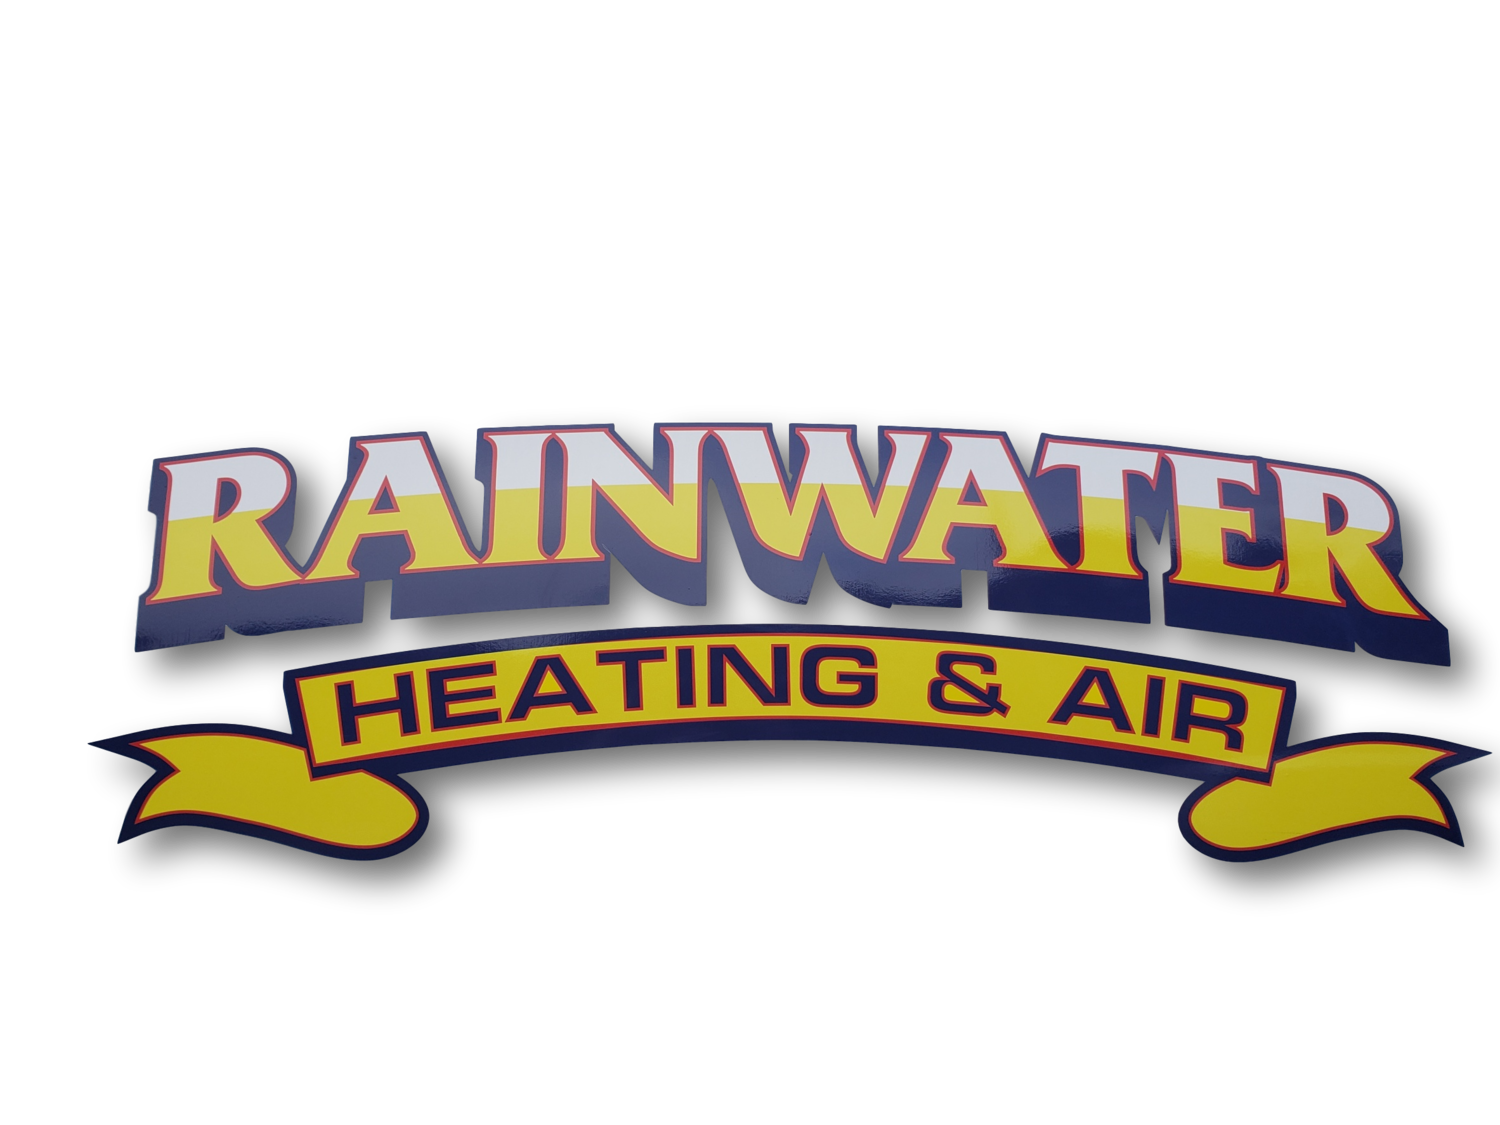 Rainwater Heating & Air